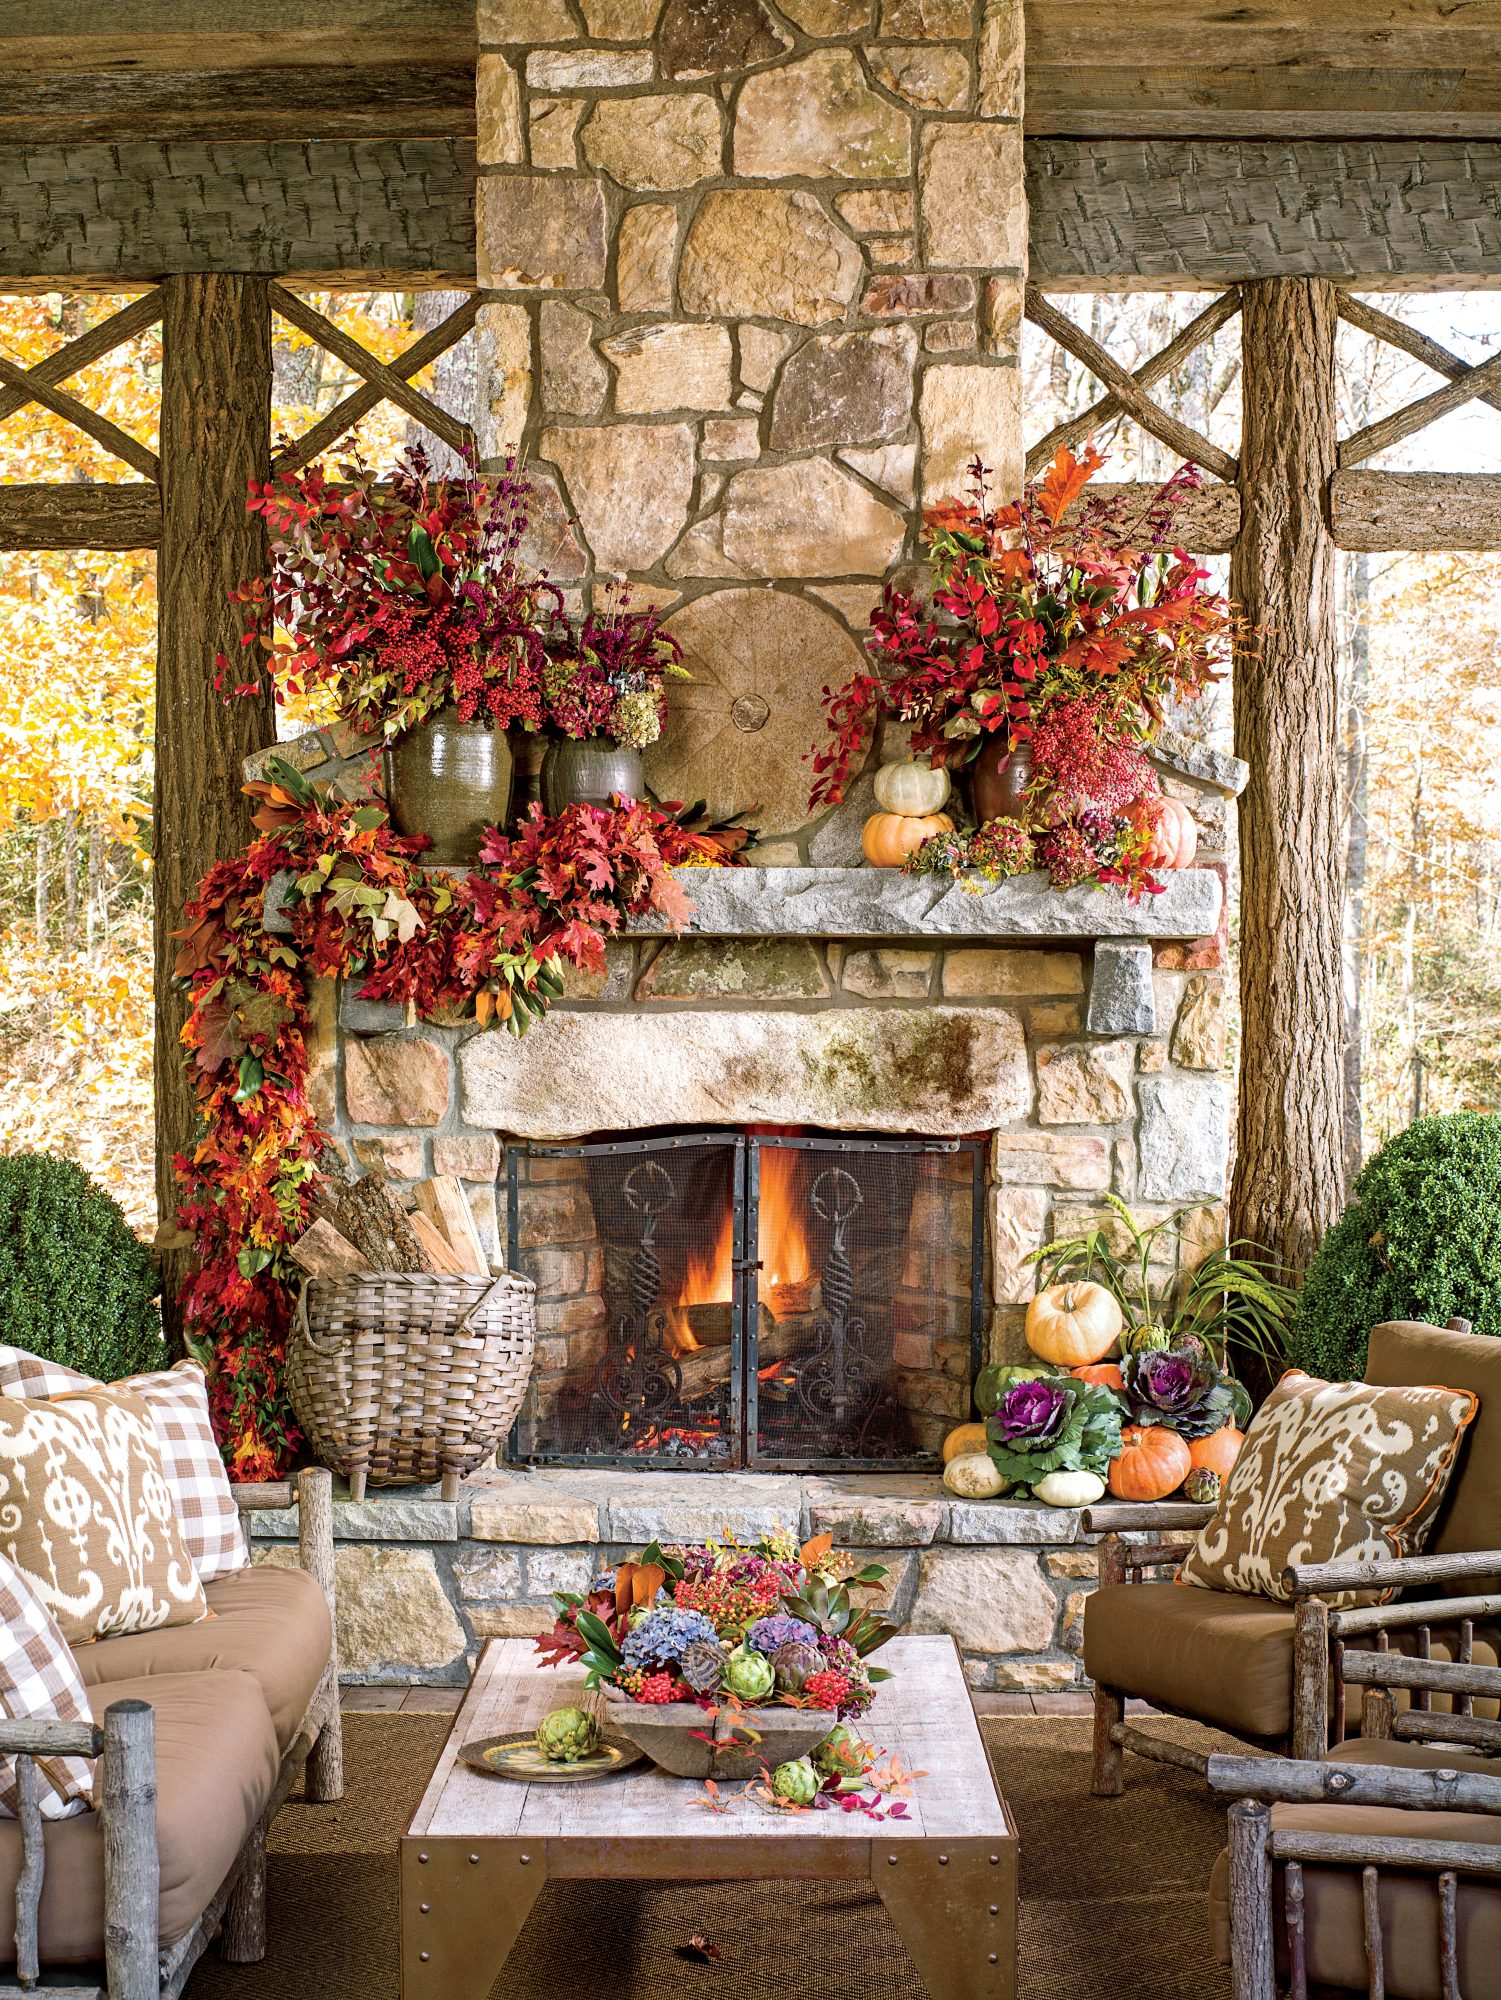 25 Beautiful Outdoor Room Ideas for Fall and Beyond ... on Southern Outdoor Living id=24288